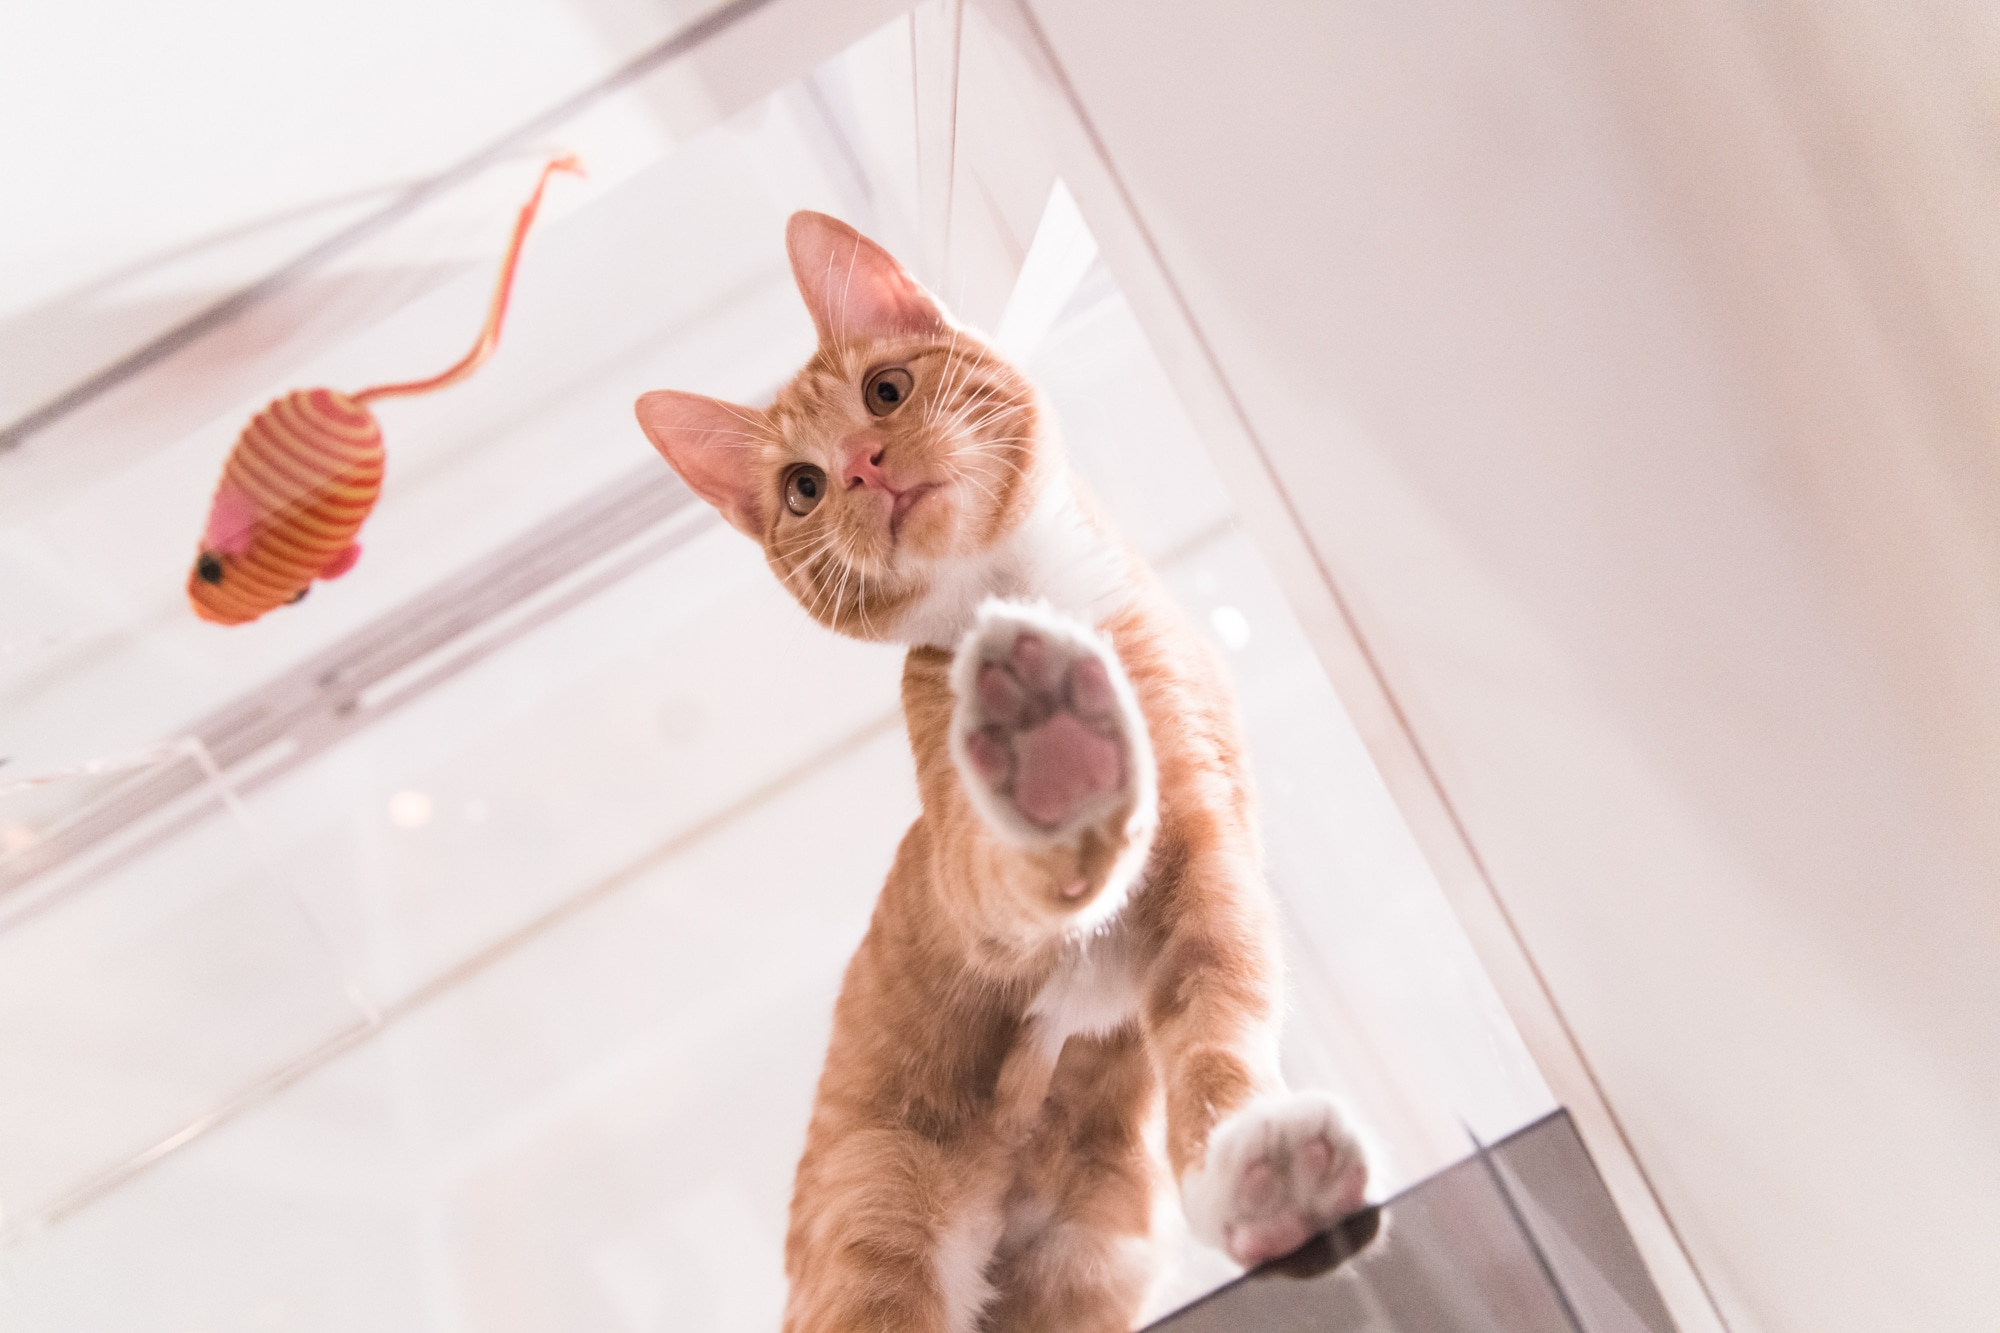 Cat looking down from above atop a glass floor